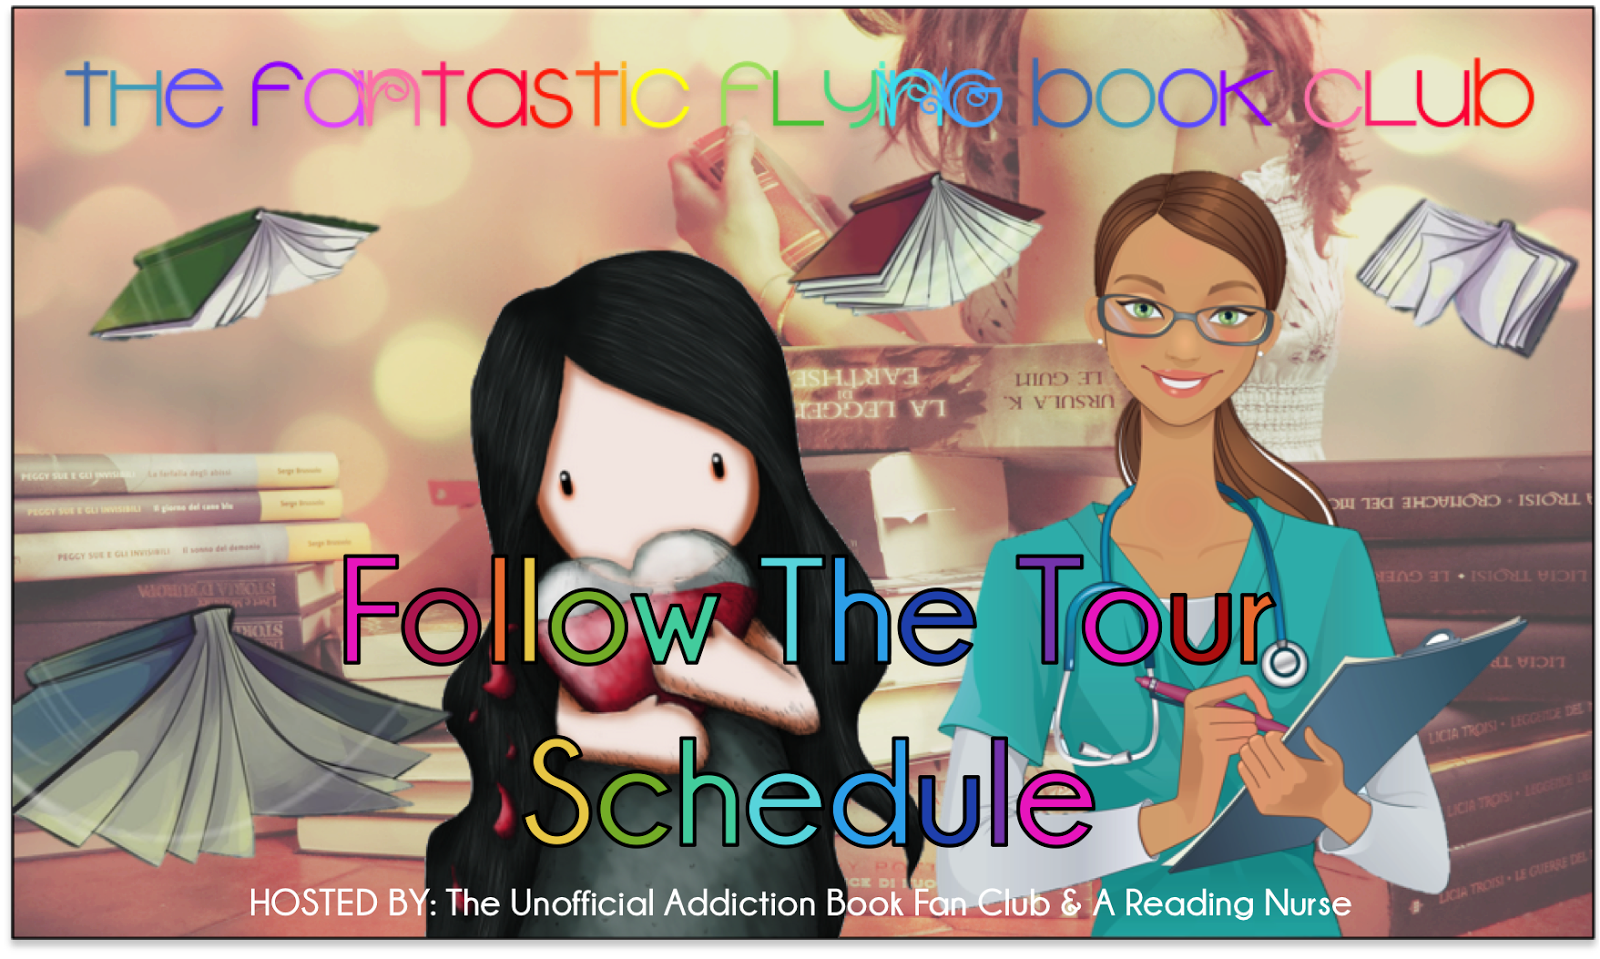 http://theunofficialaddictionbookfanclub.blogspot.com/2014/02/ffbc-blog-tour-star-thief-star-thief.html